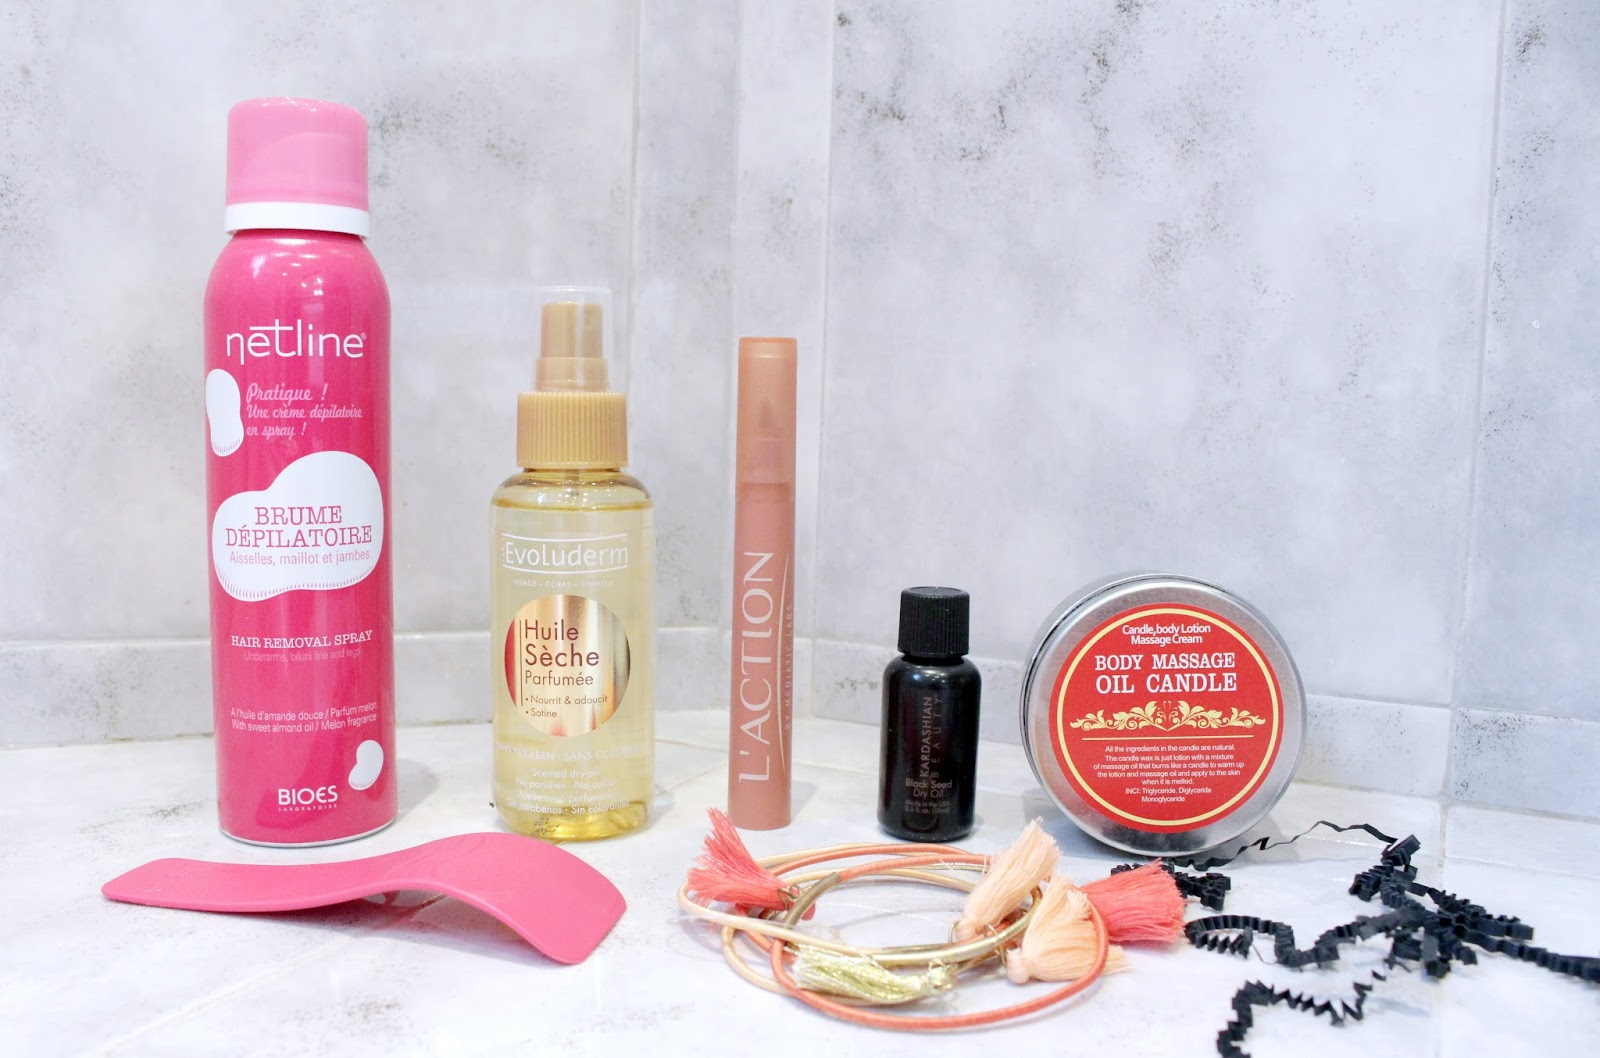 Salle De Bain Humide Sans Fenetre ~ Review Avis Mitig My Sweetie Box Urban Jungle Smoothie